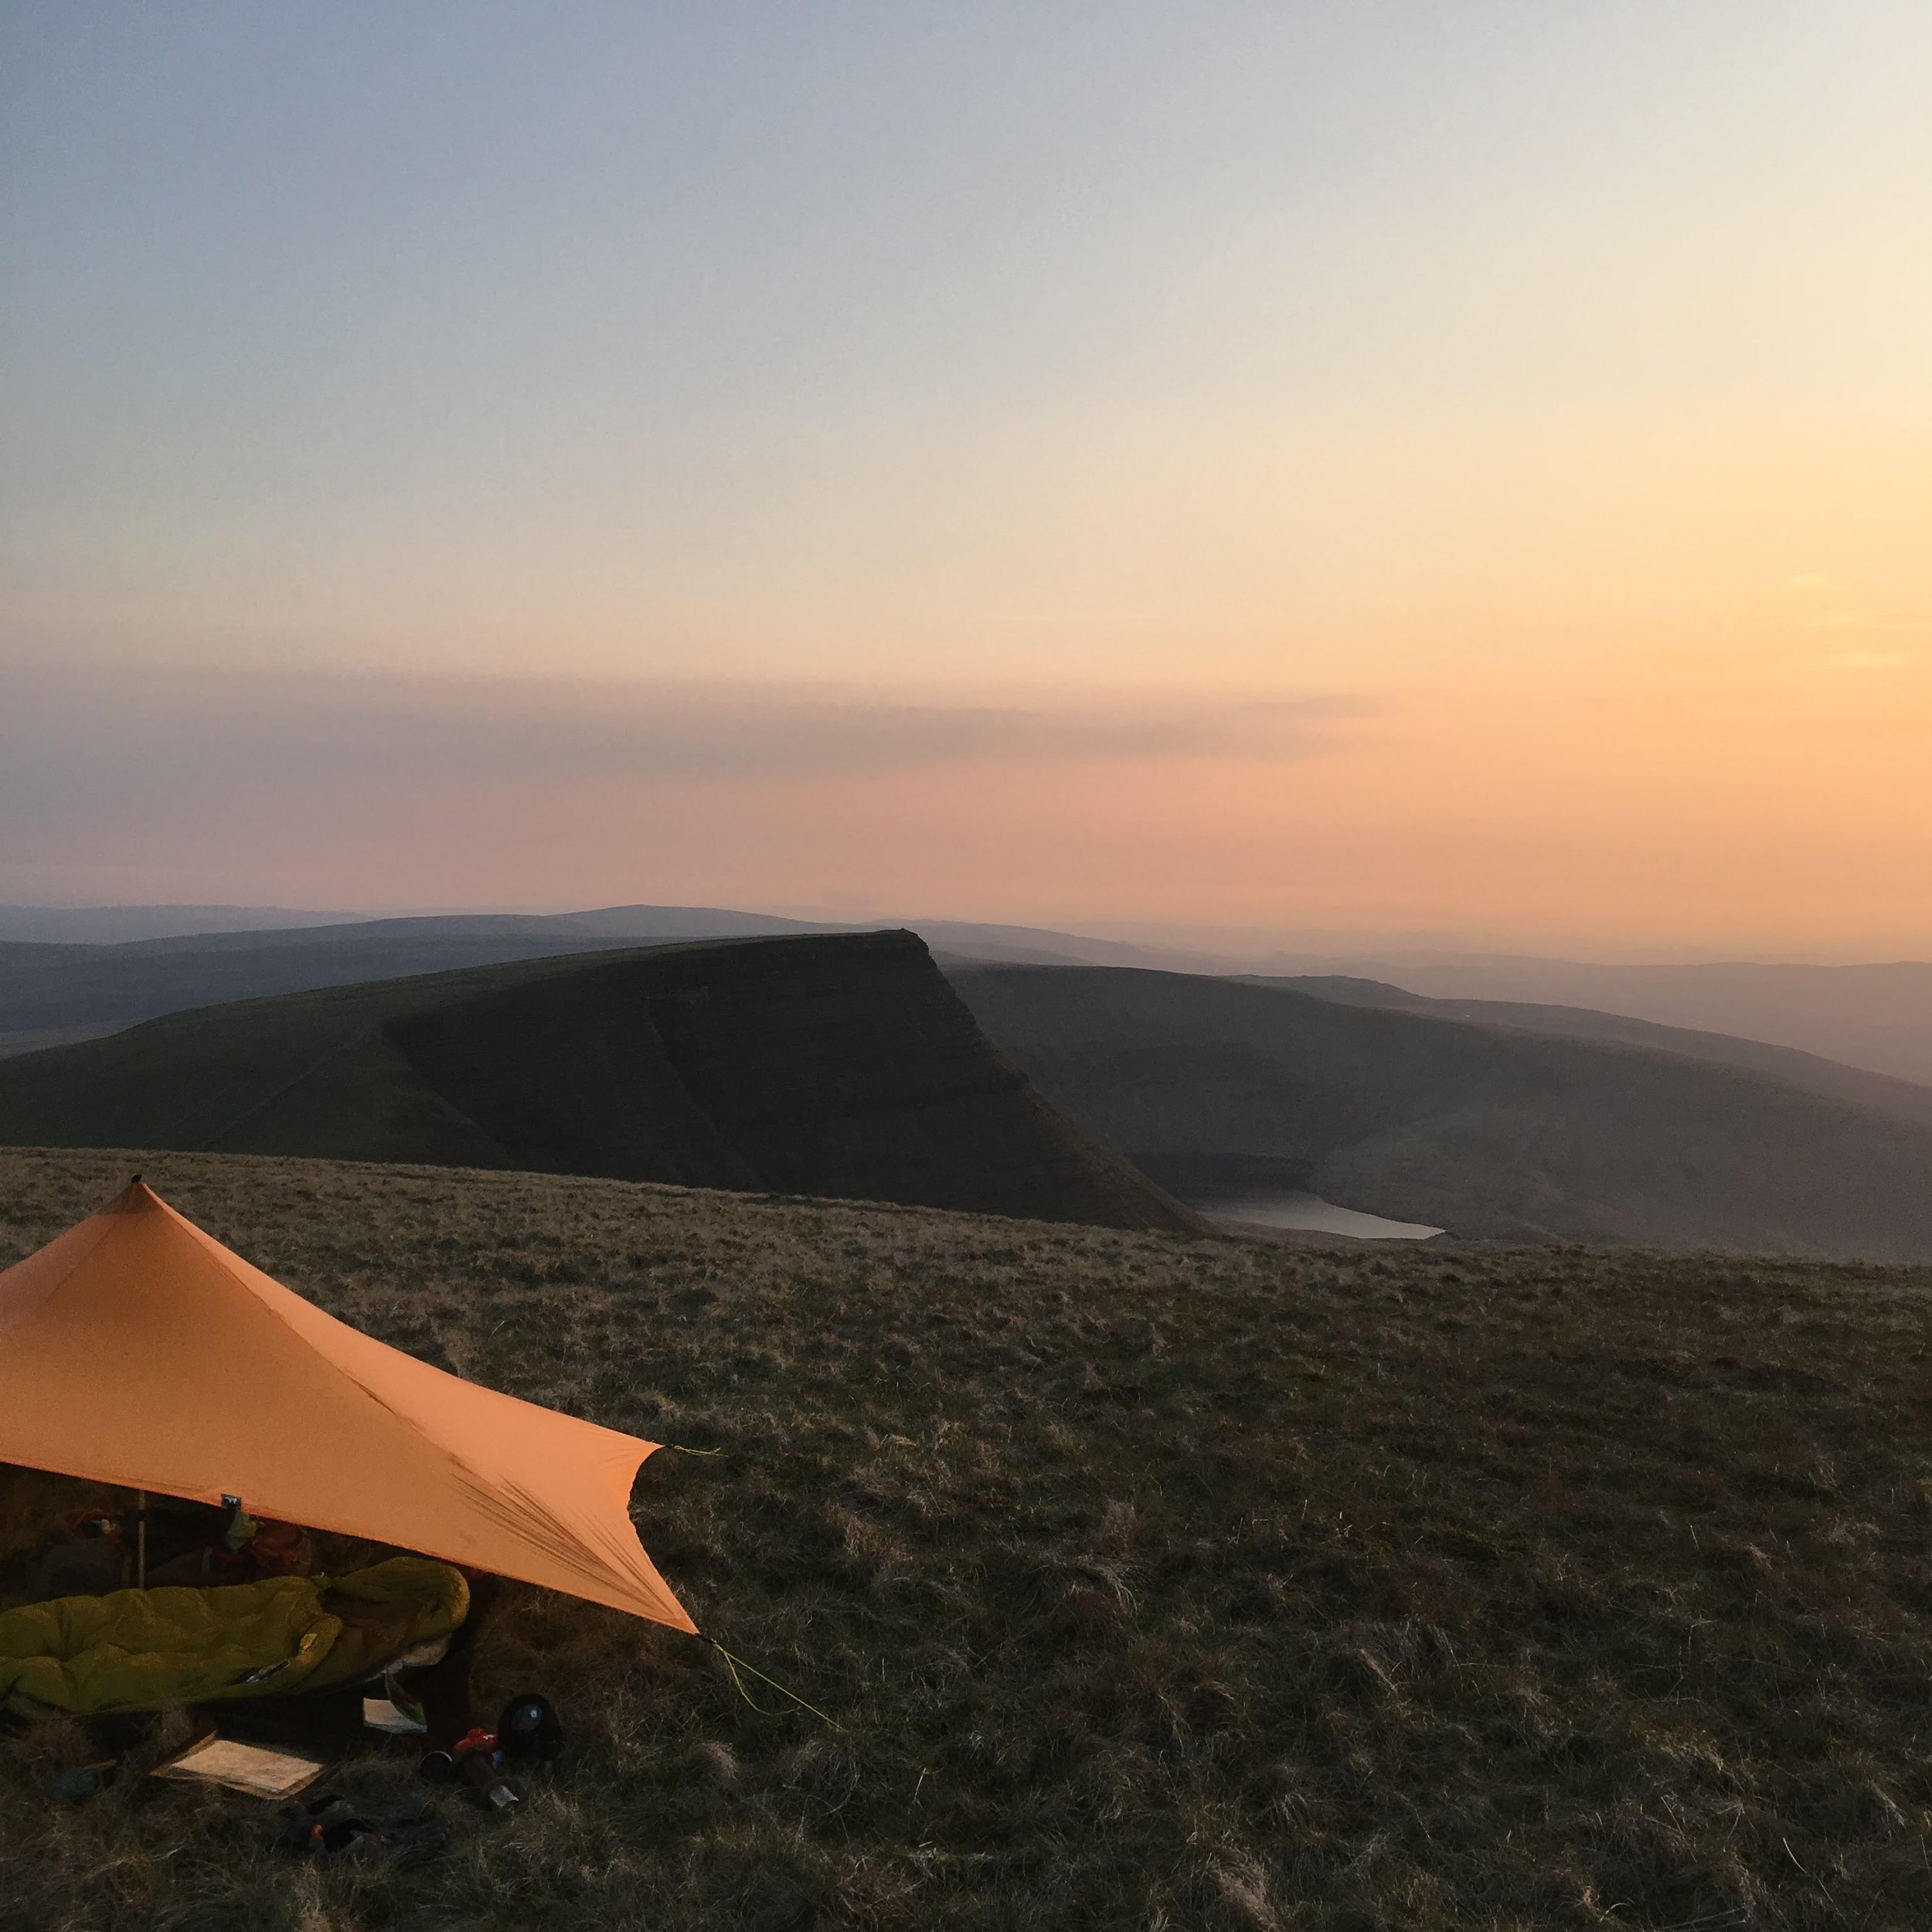 The MLD Trailstar looking out over Llyn y Fan Fach